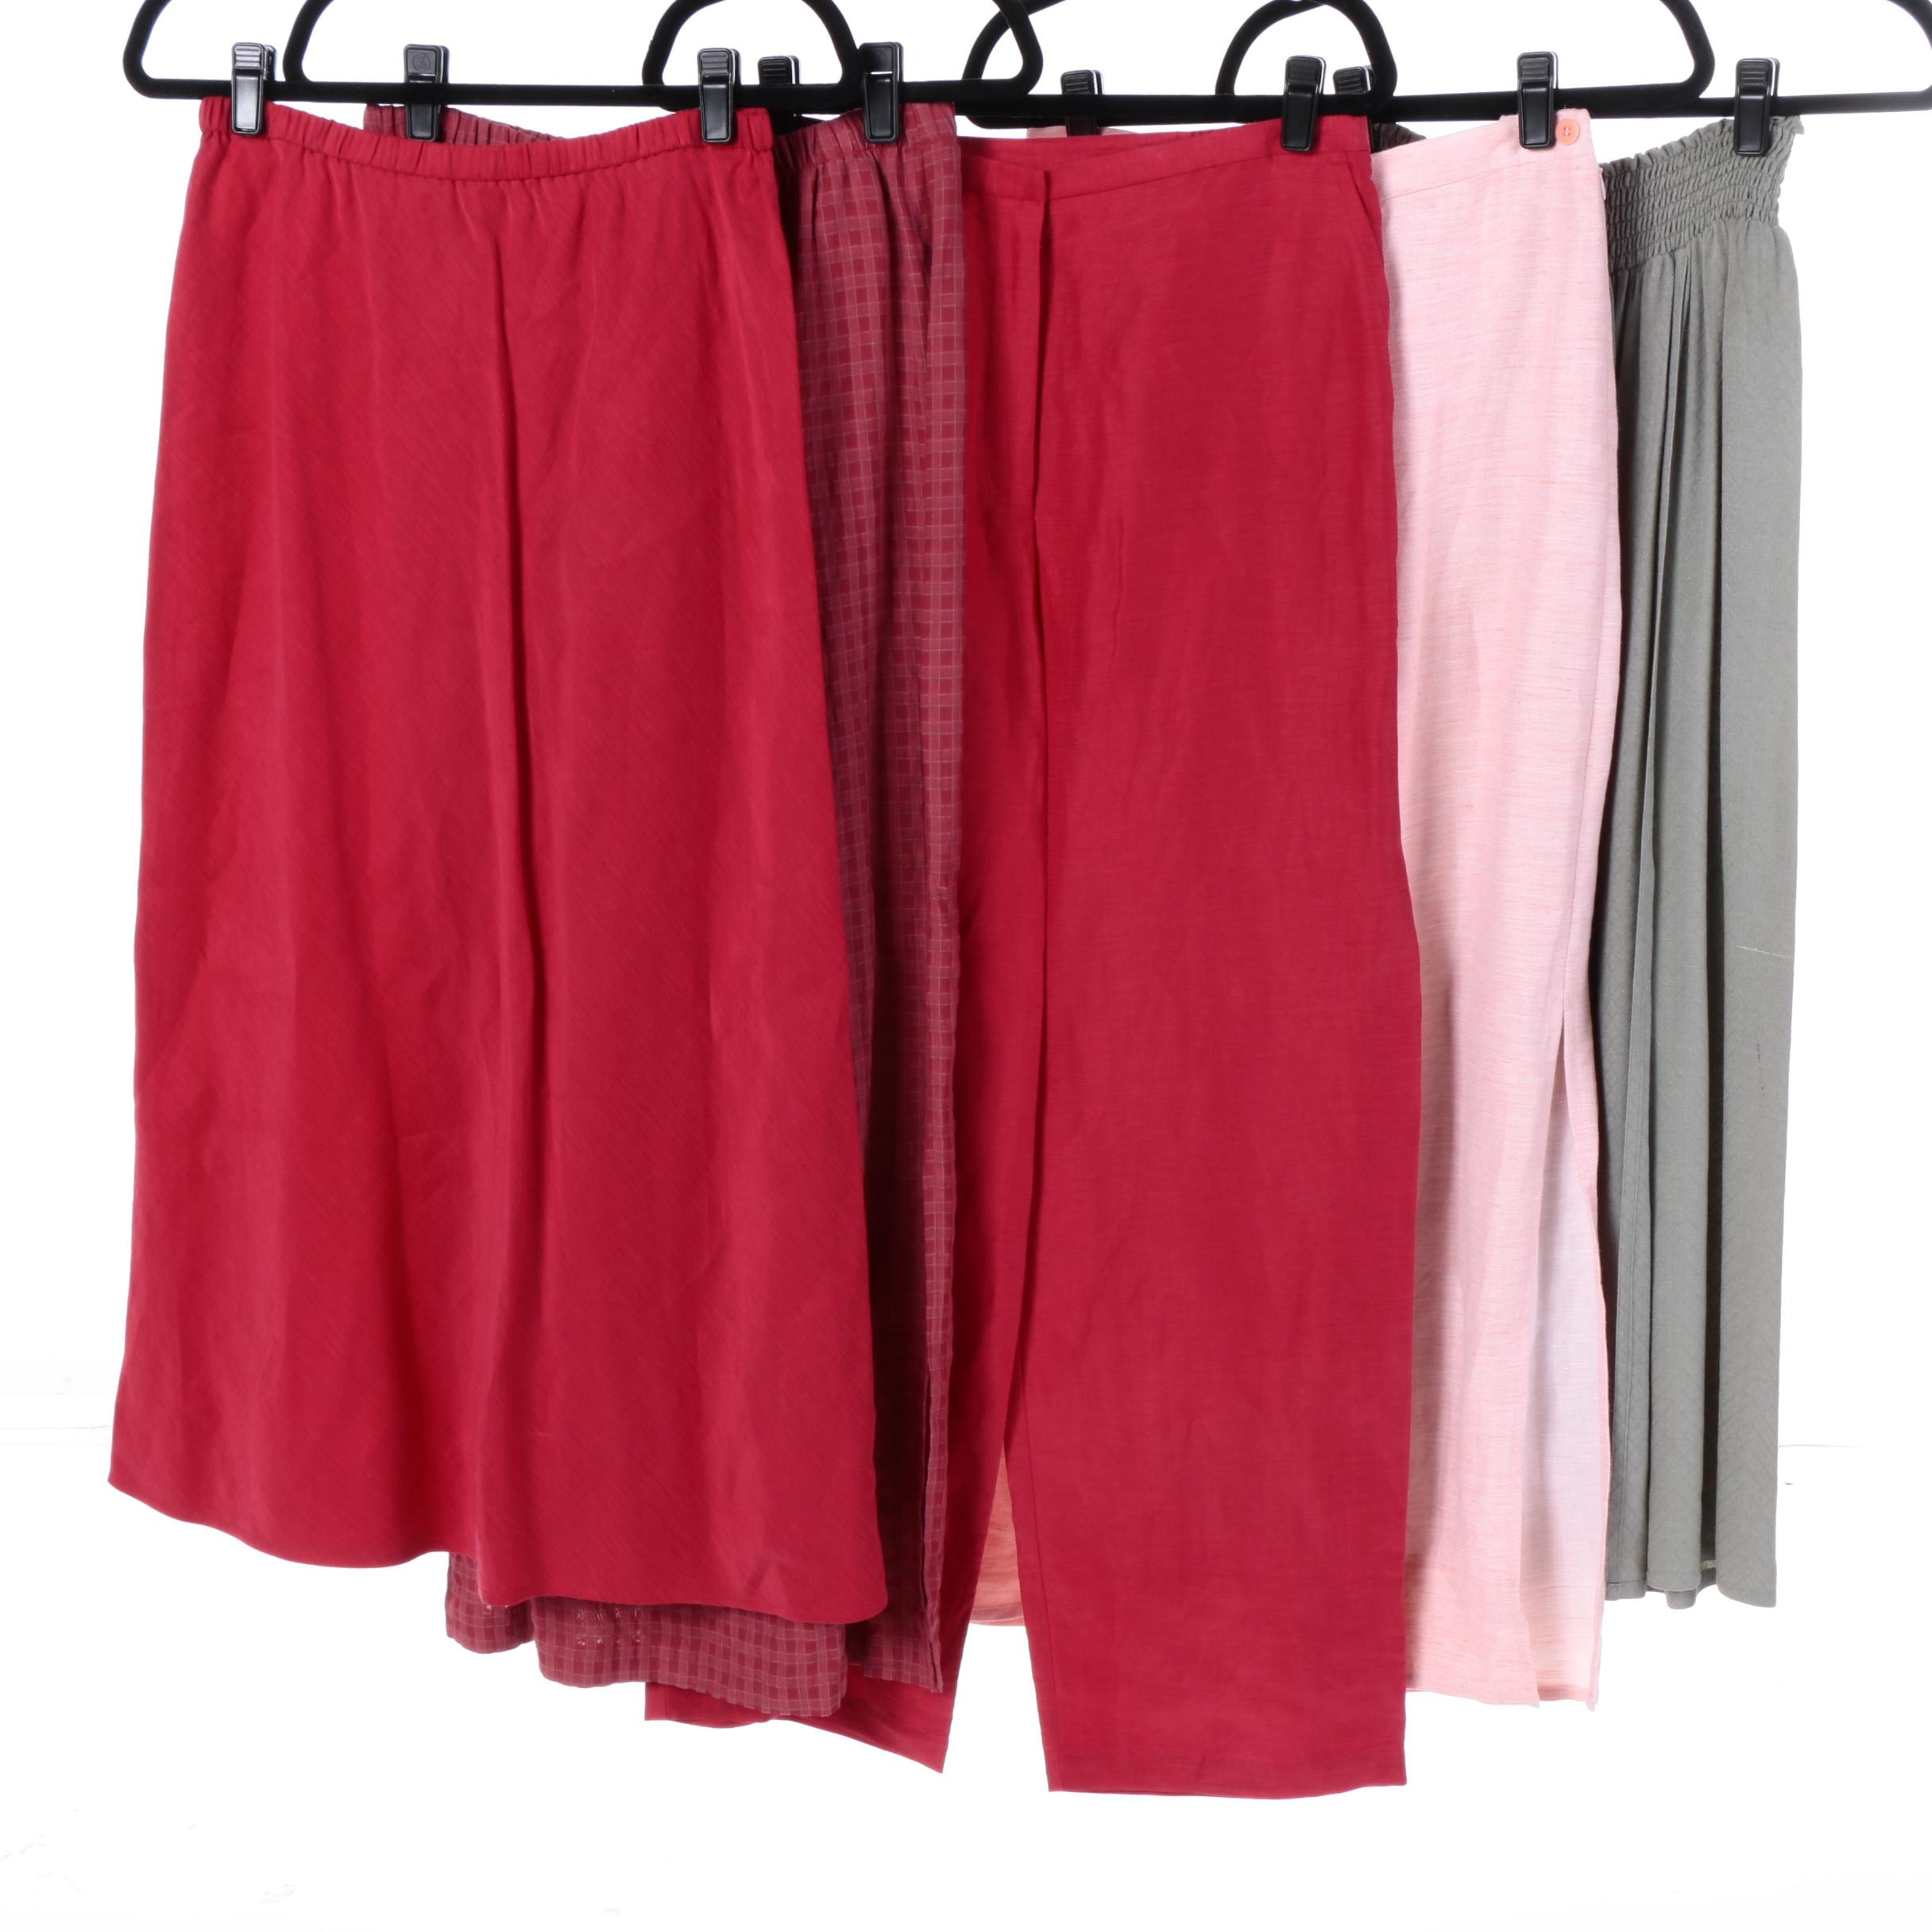 Women's Eileen Fisher Skirts and Pants